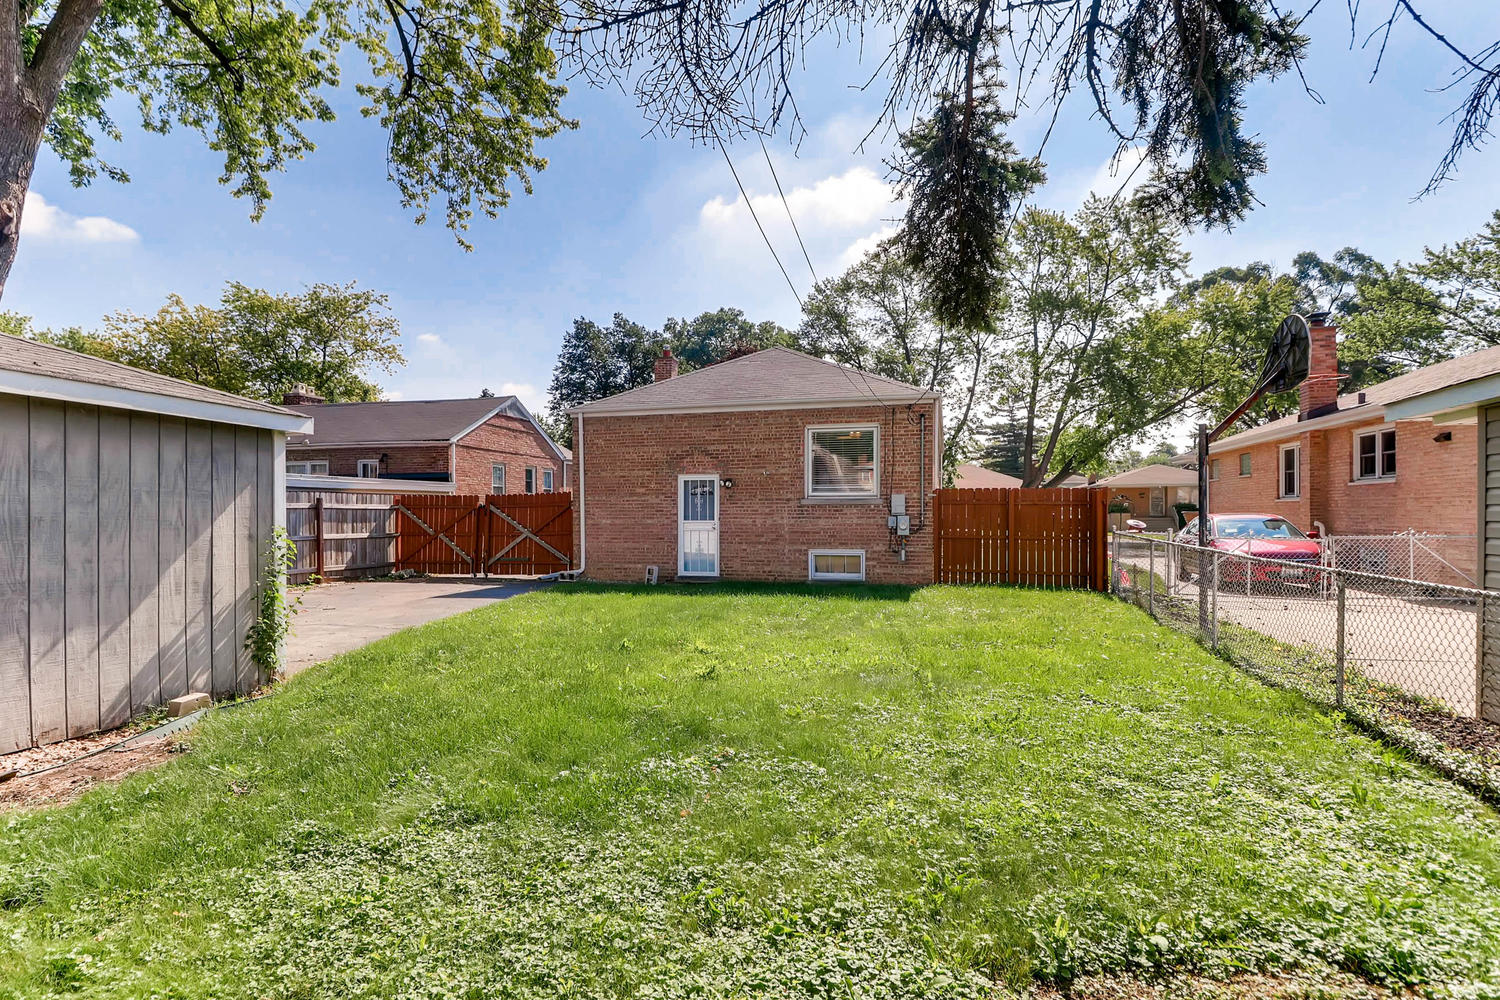 Photo of 9210 S Troy Ave, Evergreen Park, IL, 60805